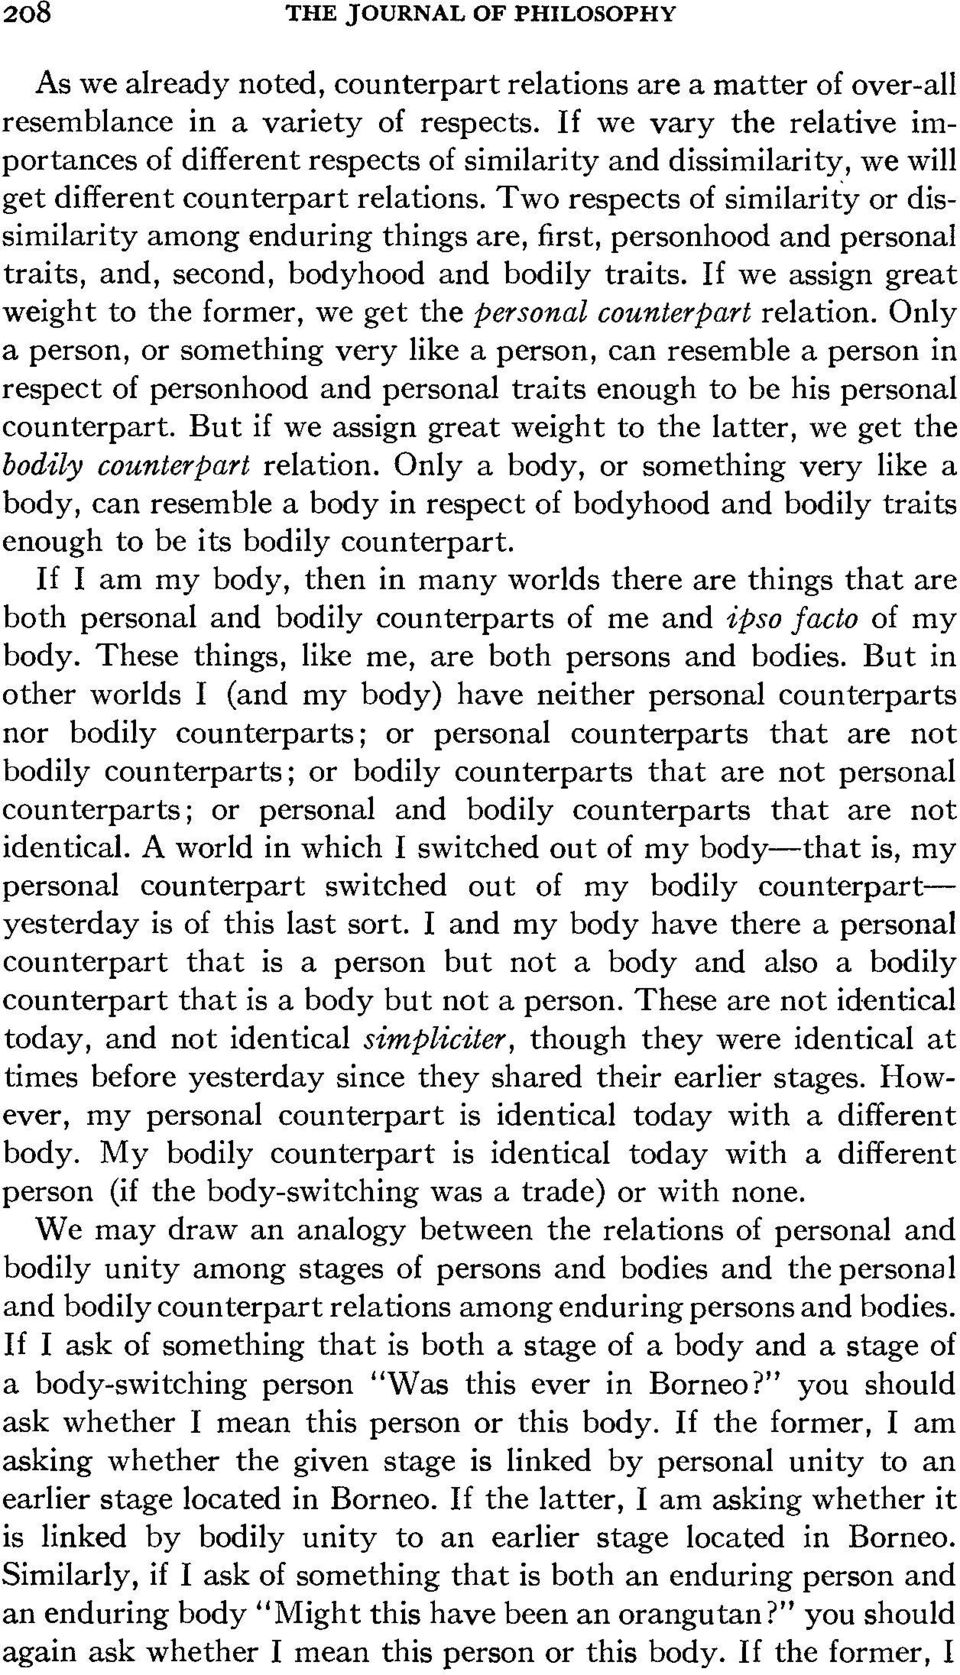 Two respects of similarity or dissimilarity among enduring things are, first, personhood and personal traits, and, second, bodyhood and bodily traits.